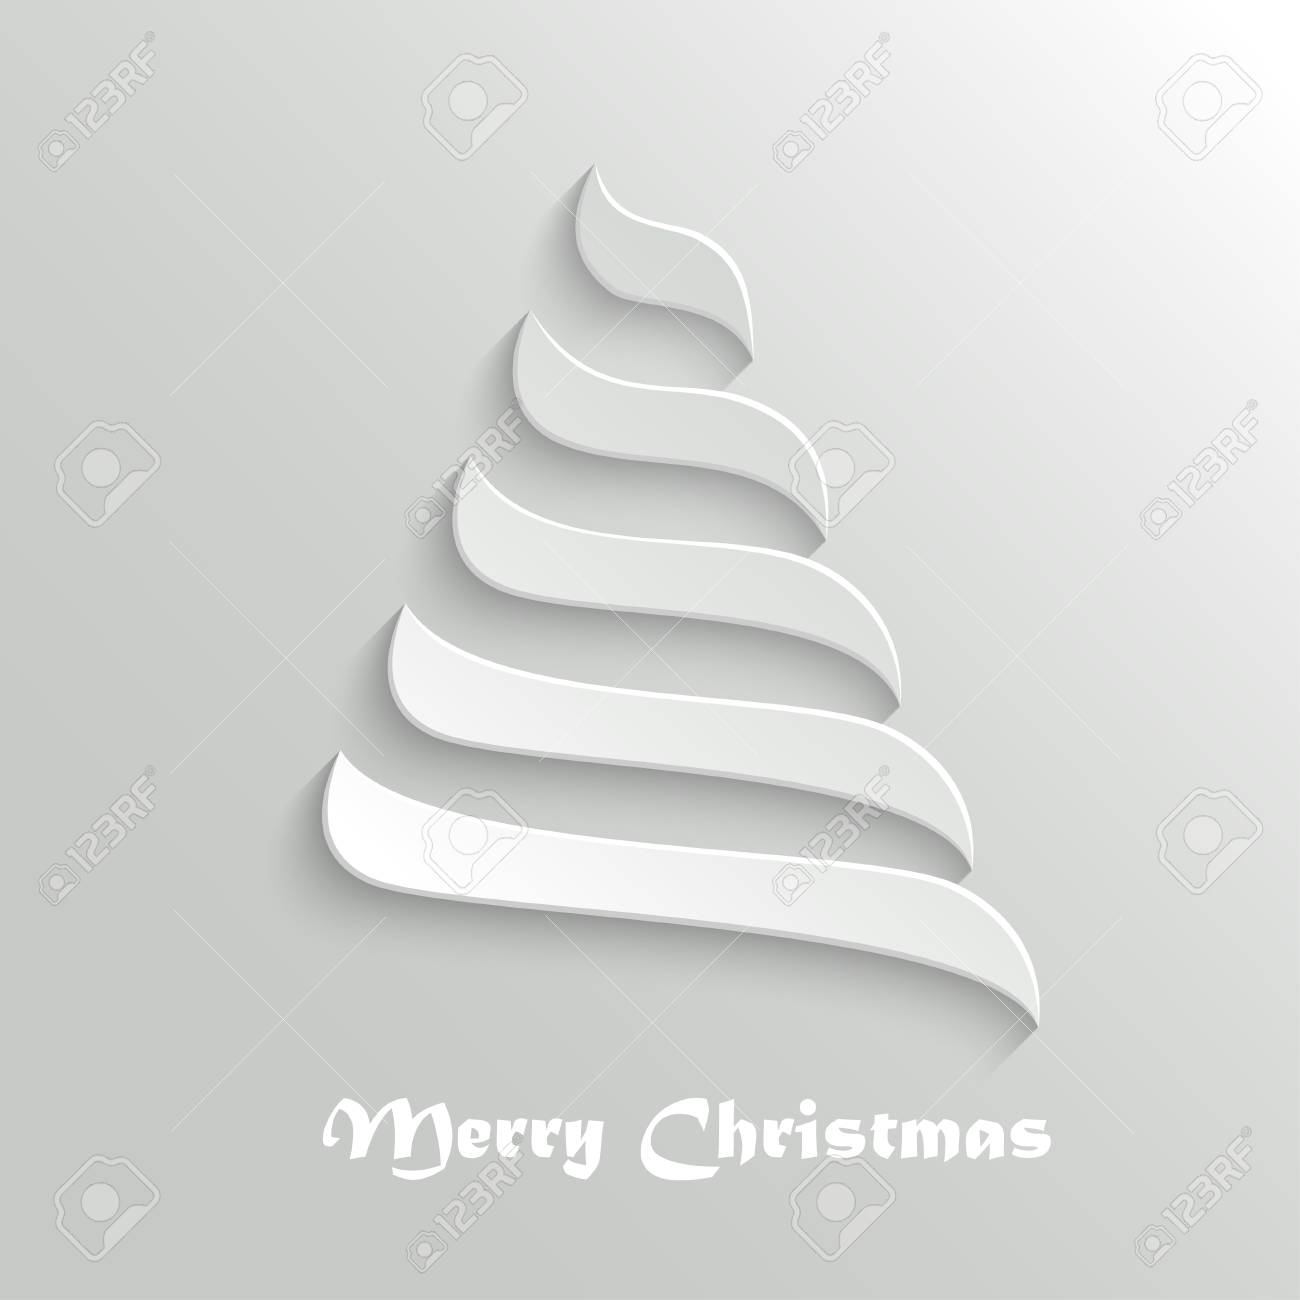 Christmas Tree 3d Abstract New Year Symbol Greeting Card Design